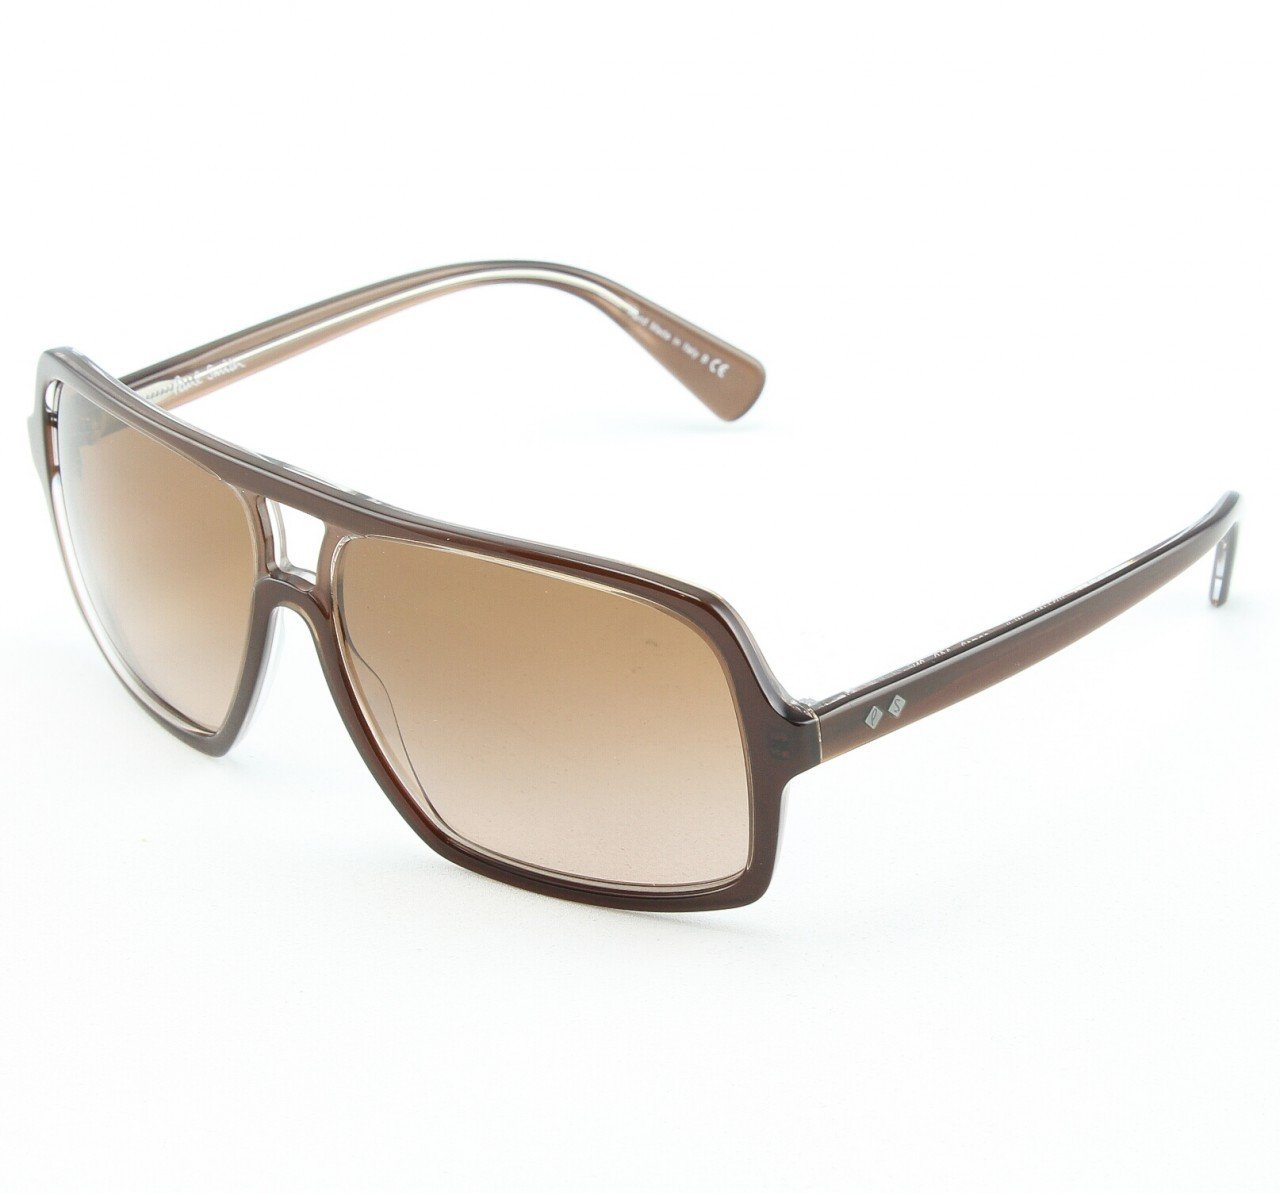 Paul Smith Waller 8082S 1017/13 Sunglasses Chocolate with Brown Gradient Lenses